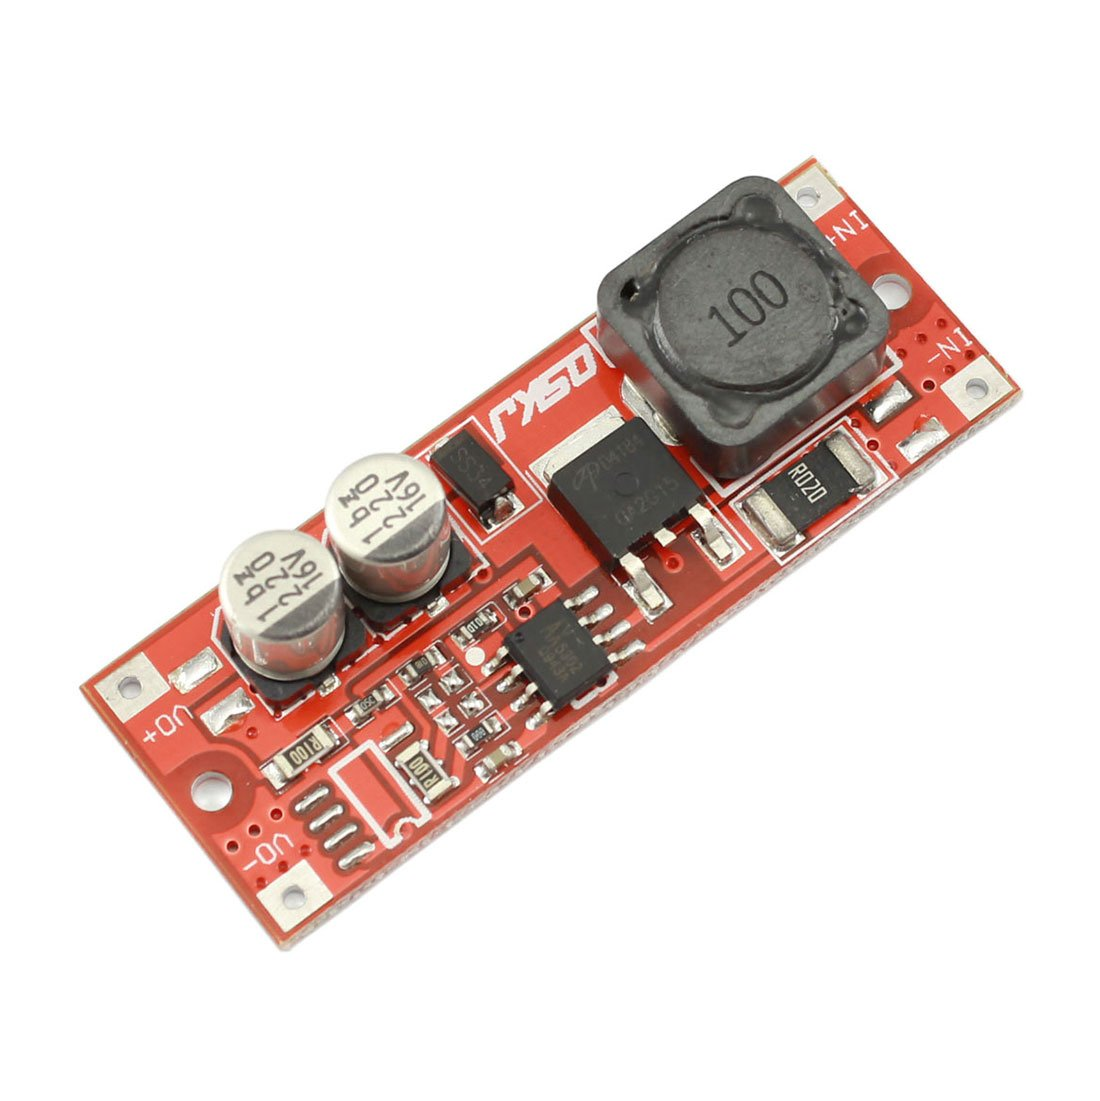 Ailavi Dc Boost Converter 3v 12v To Fixed Voltage Power Supply Circuit Regulated Votlage Micro Switching Step Up Mobile Module 12w Home Audio Theater